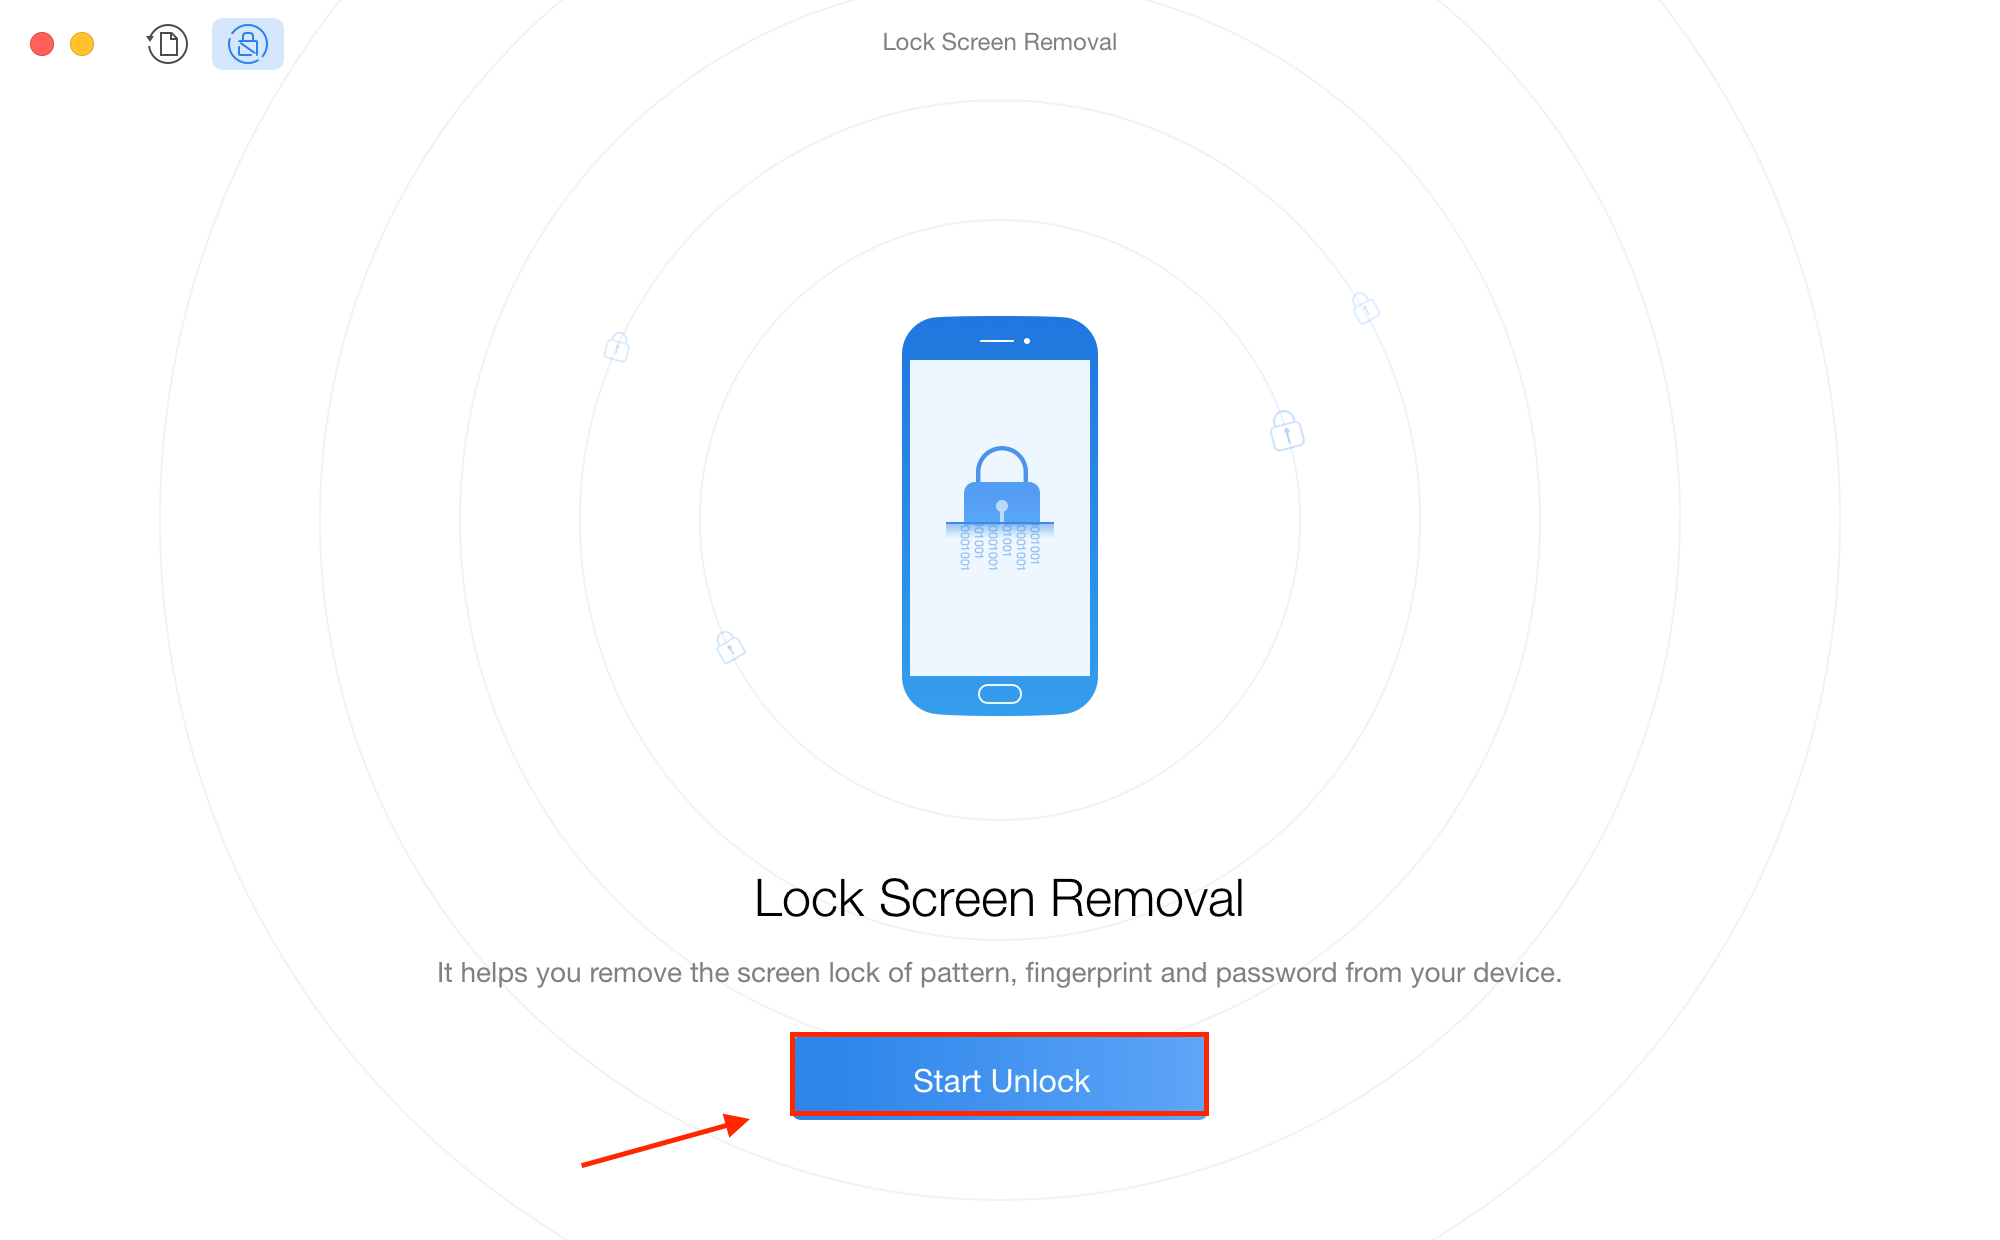 How to Unlock Samsung Phone If Forgot Pattern - Step 2